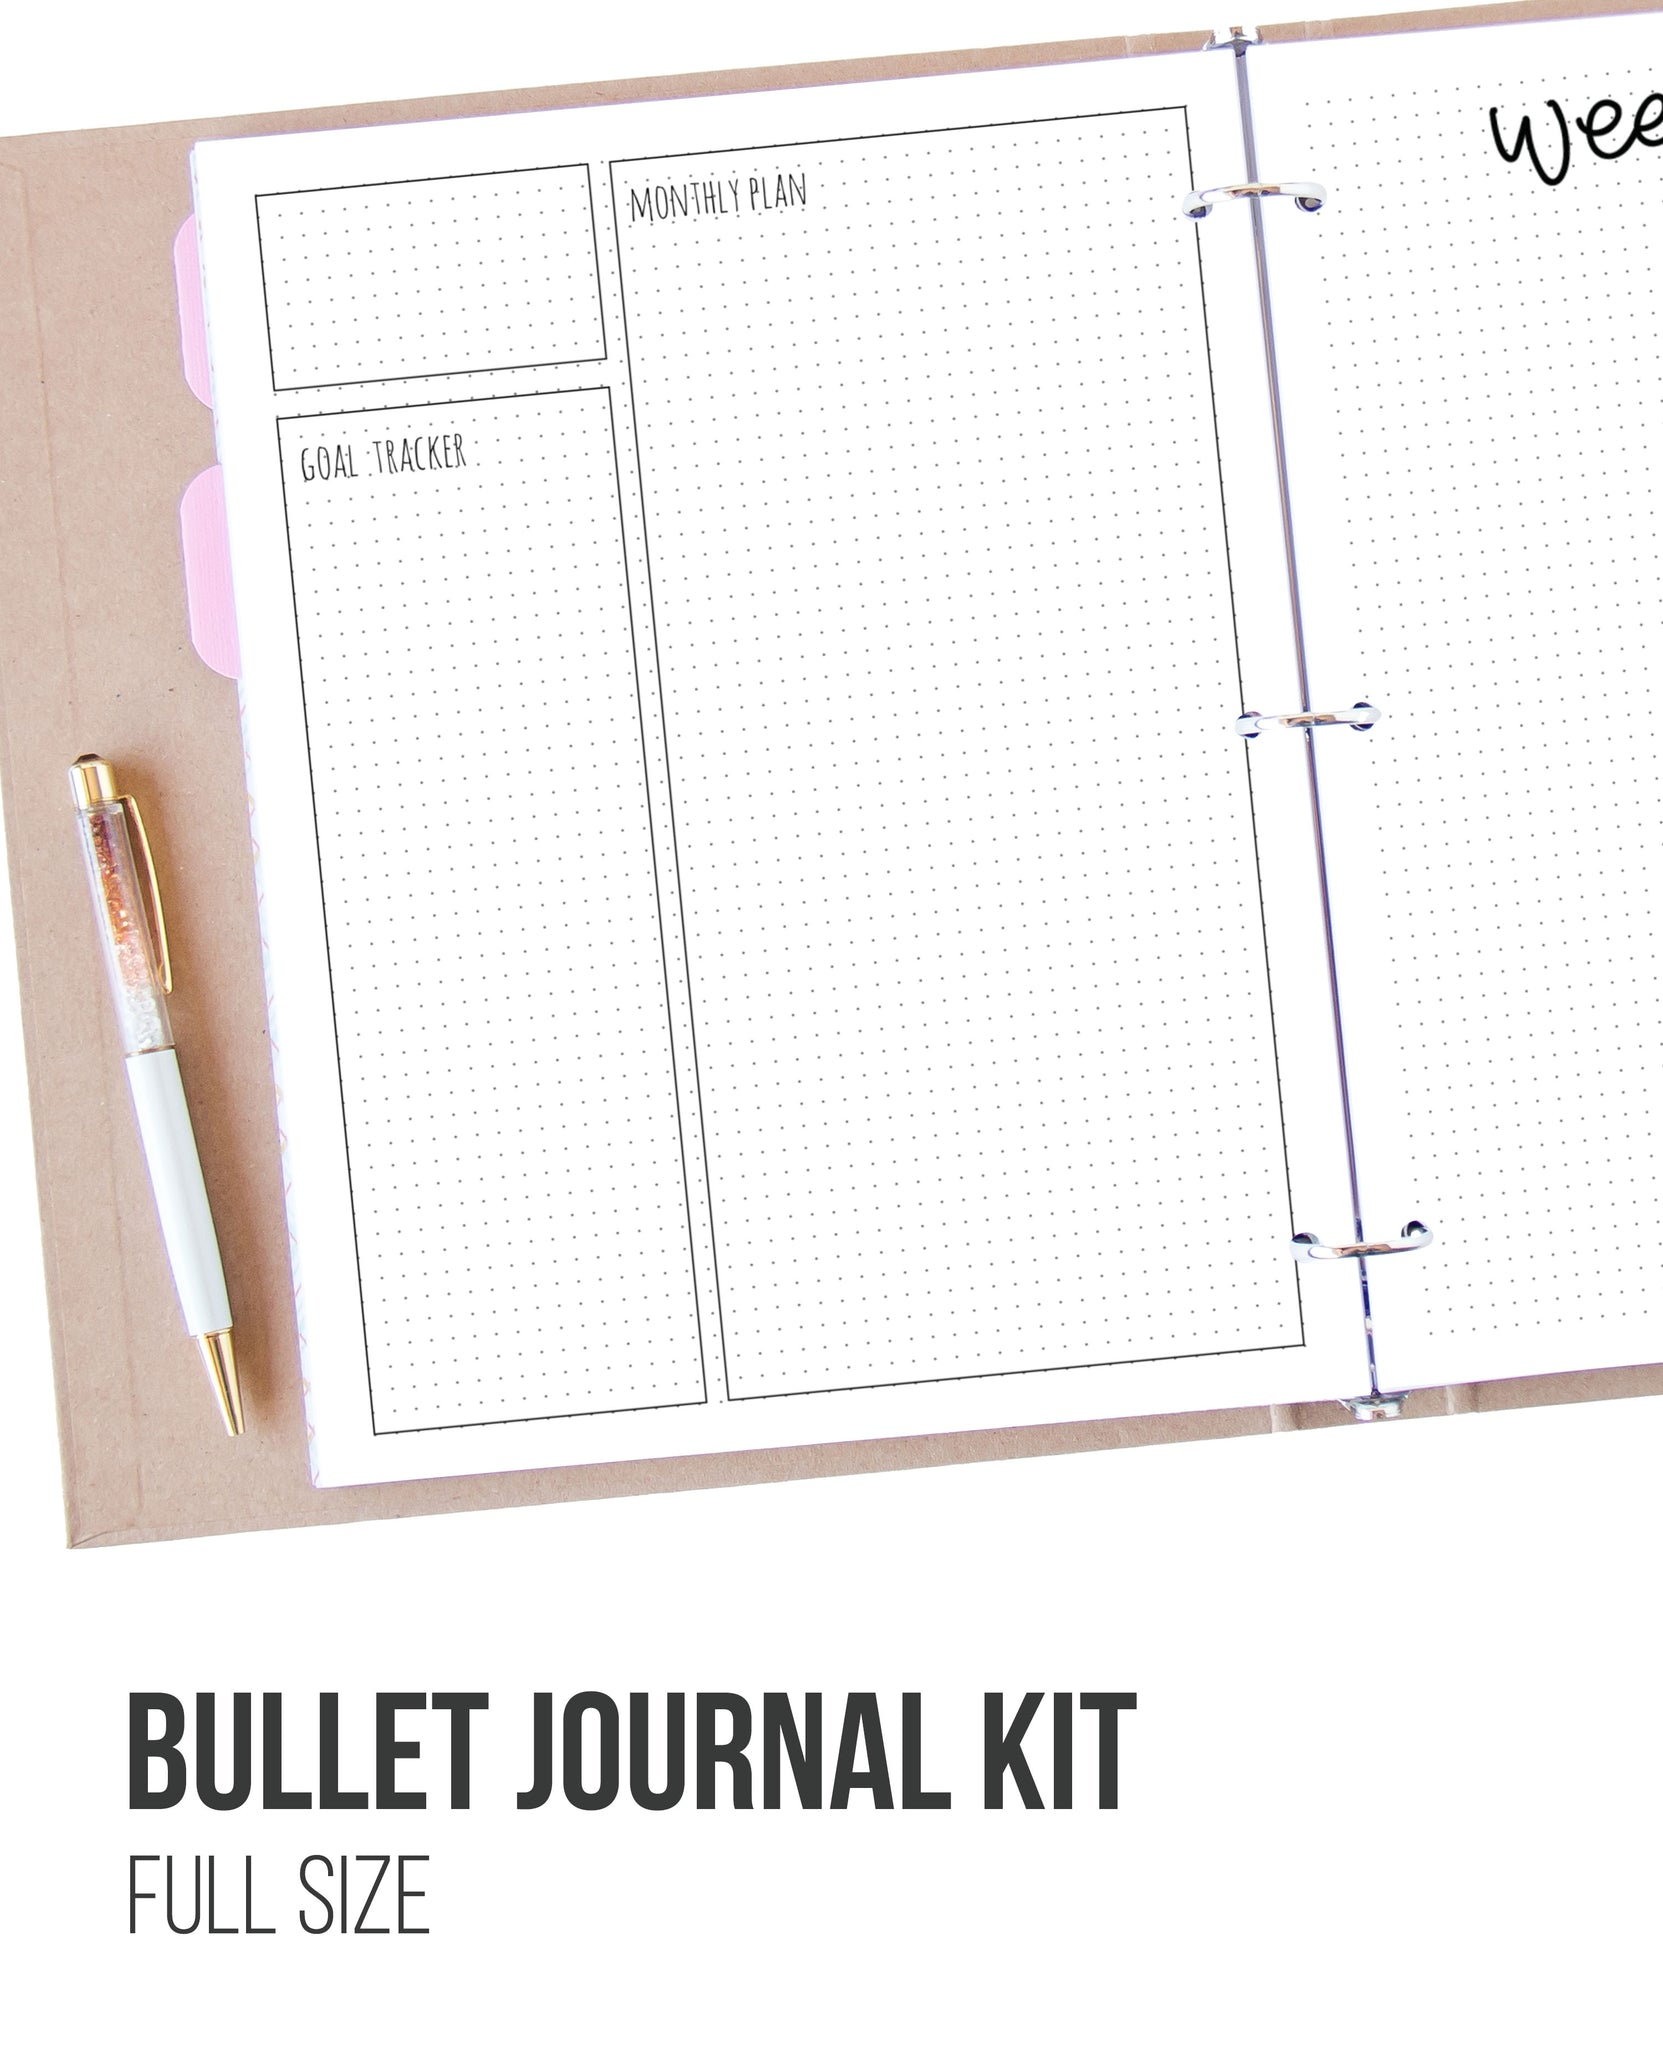 photo about Bullet Journal Printable called Bullet Magazine Printable Package - Entire Dimensions Lovable Existence Planners